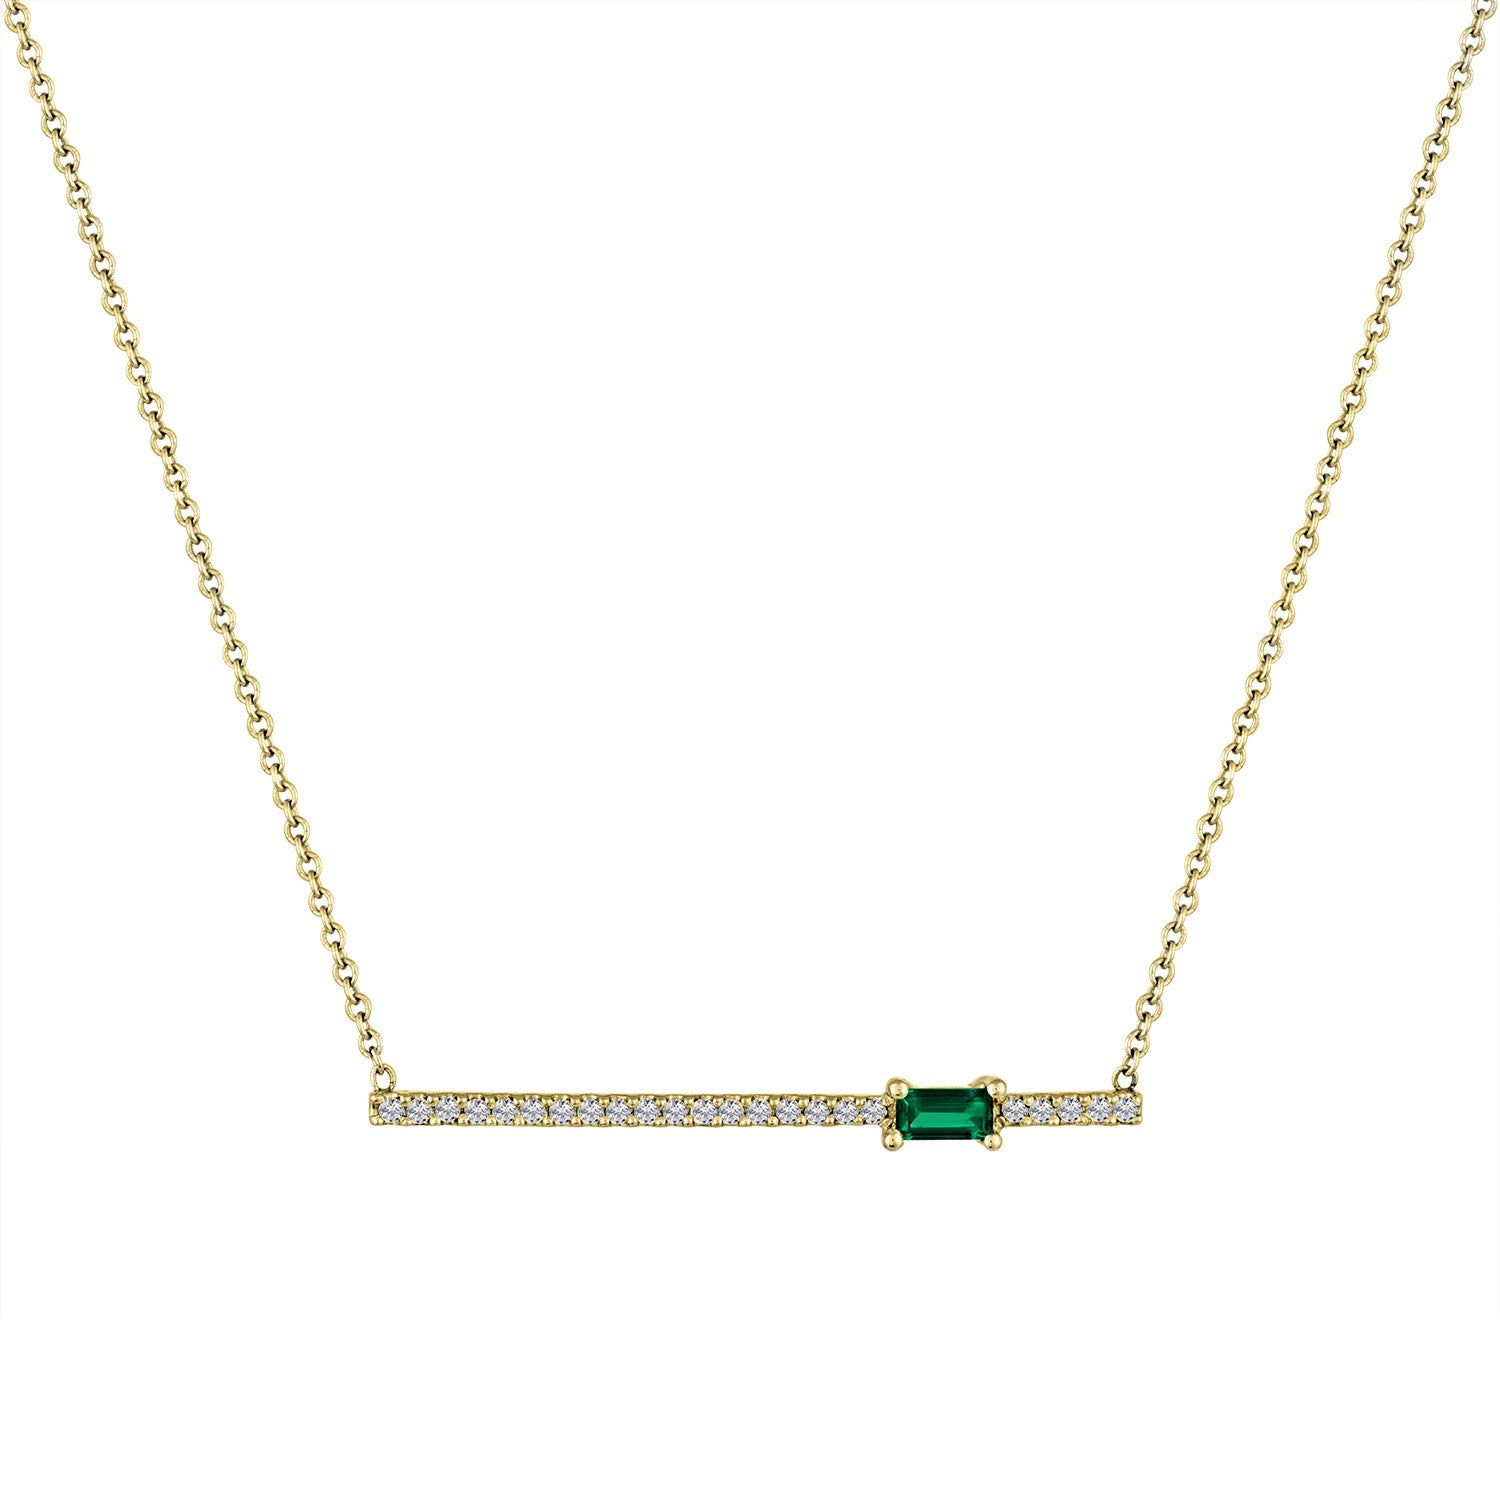 diamond bar pendant with off-center emerald baguette